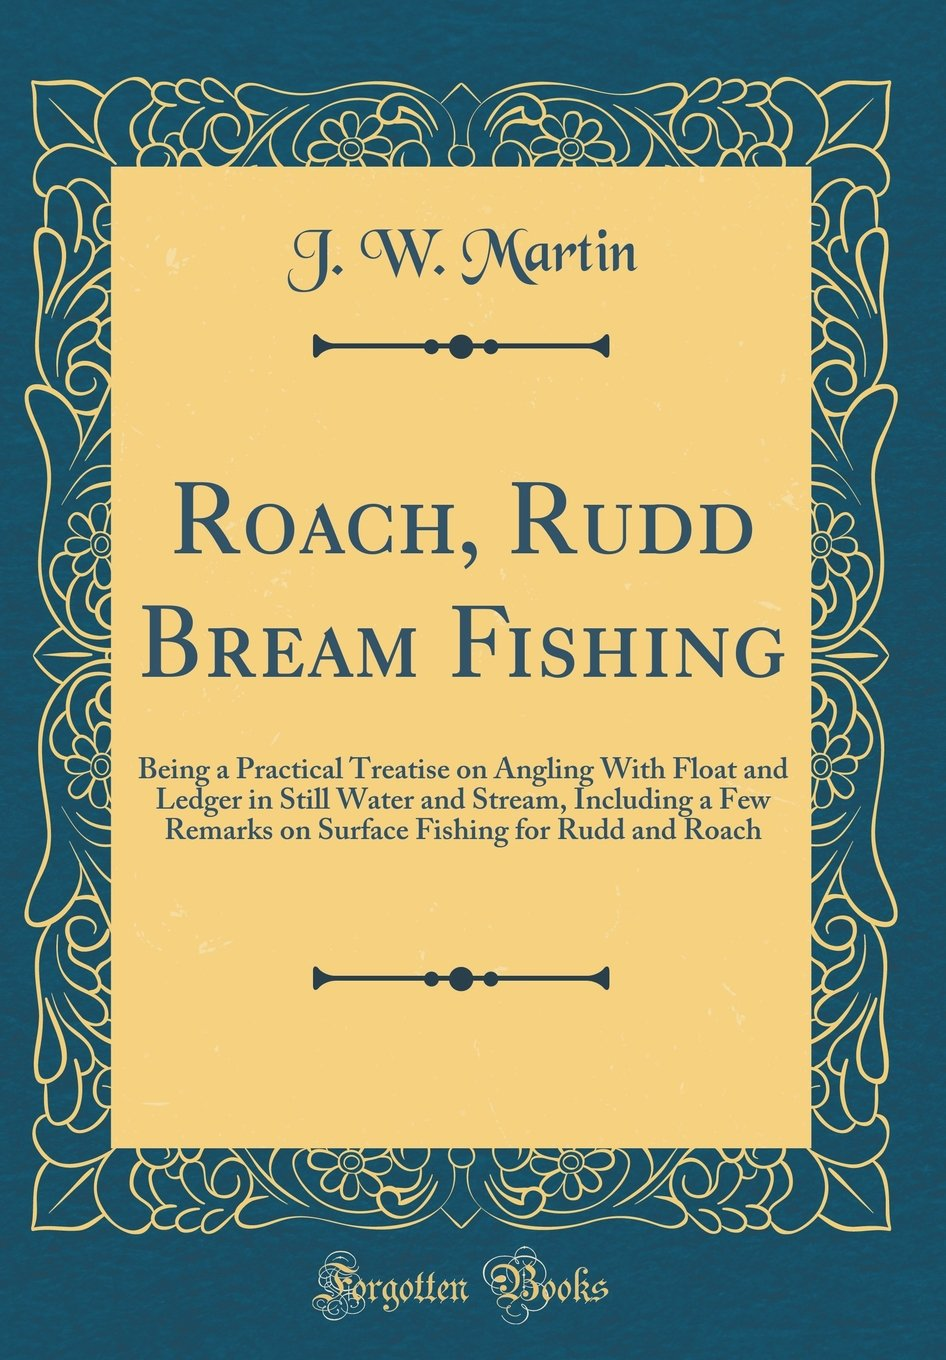 Download Roach, Rudd Bream Fishing: Being a Practical Treatise on Angling With Float and Ledger in Still Water and Stream, Including a Few Remarks on Surface Fishing for Rudd and Roach (Classic Reprint) pdf epub